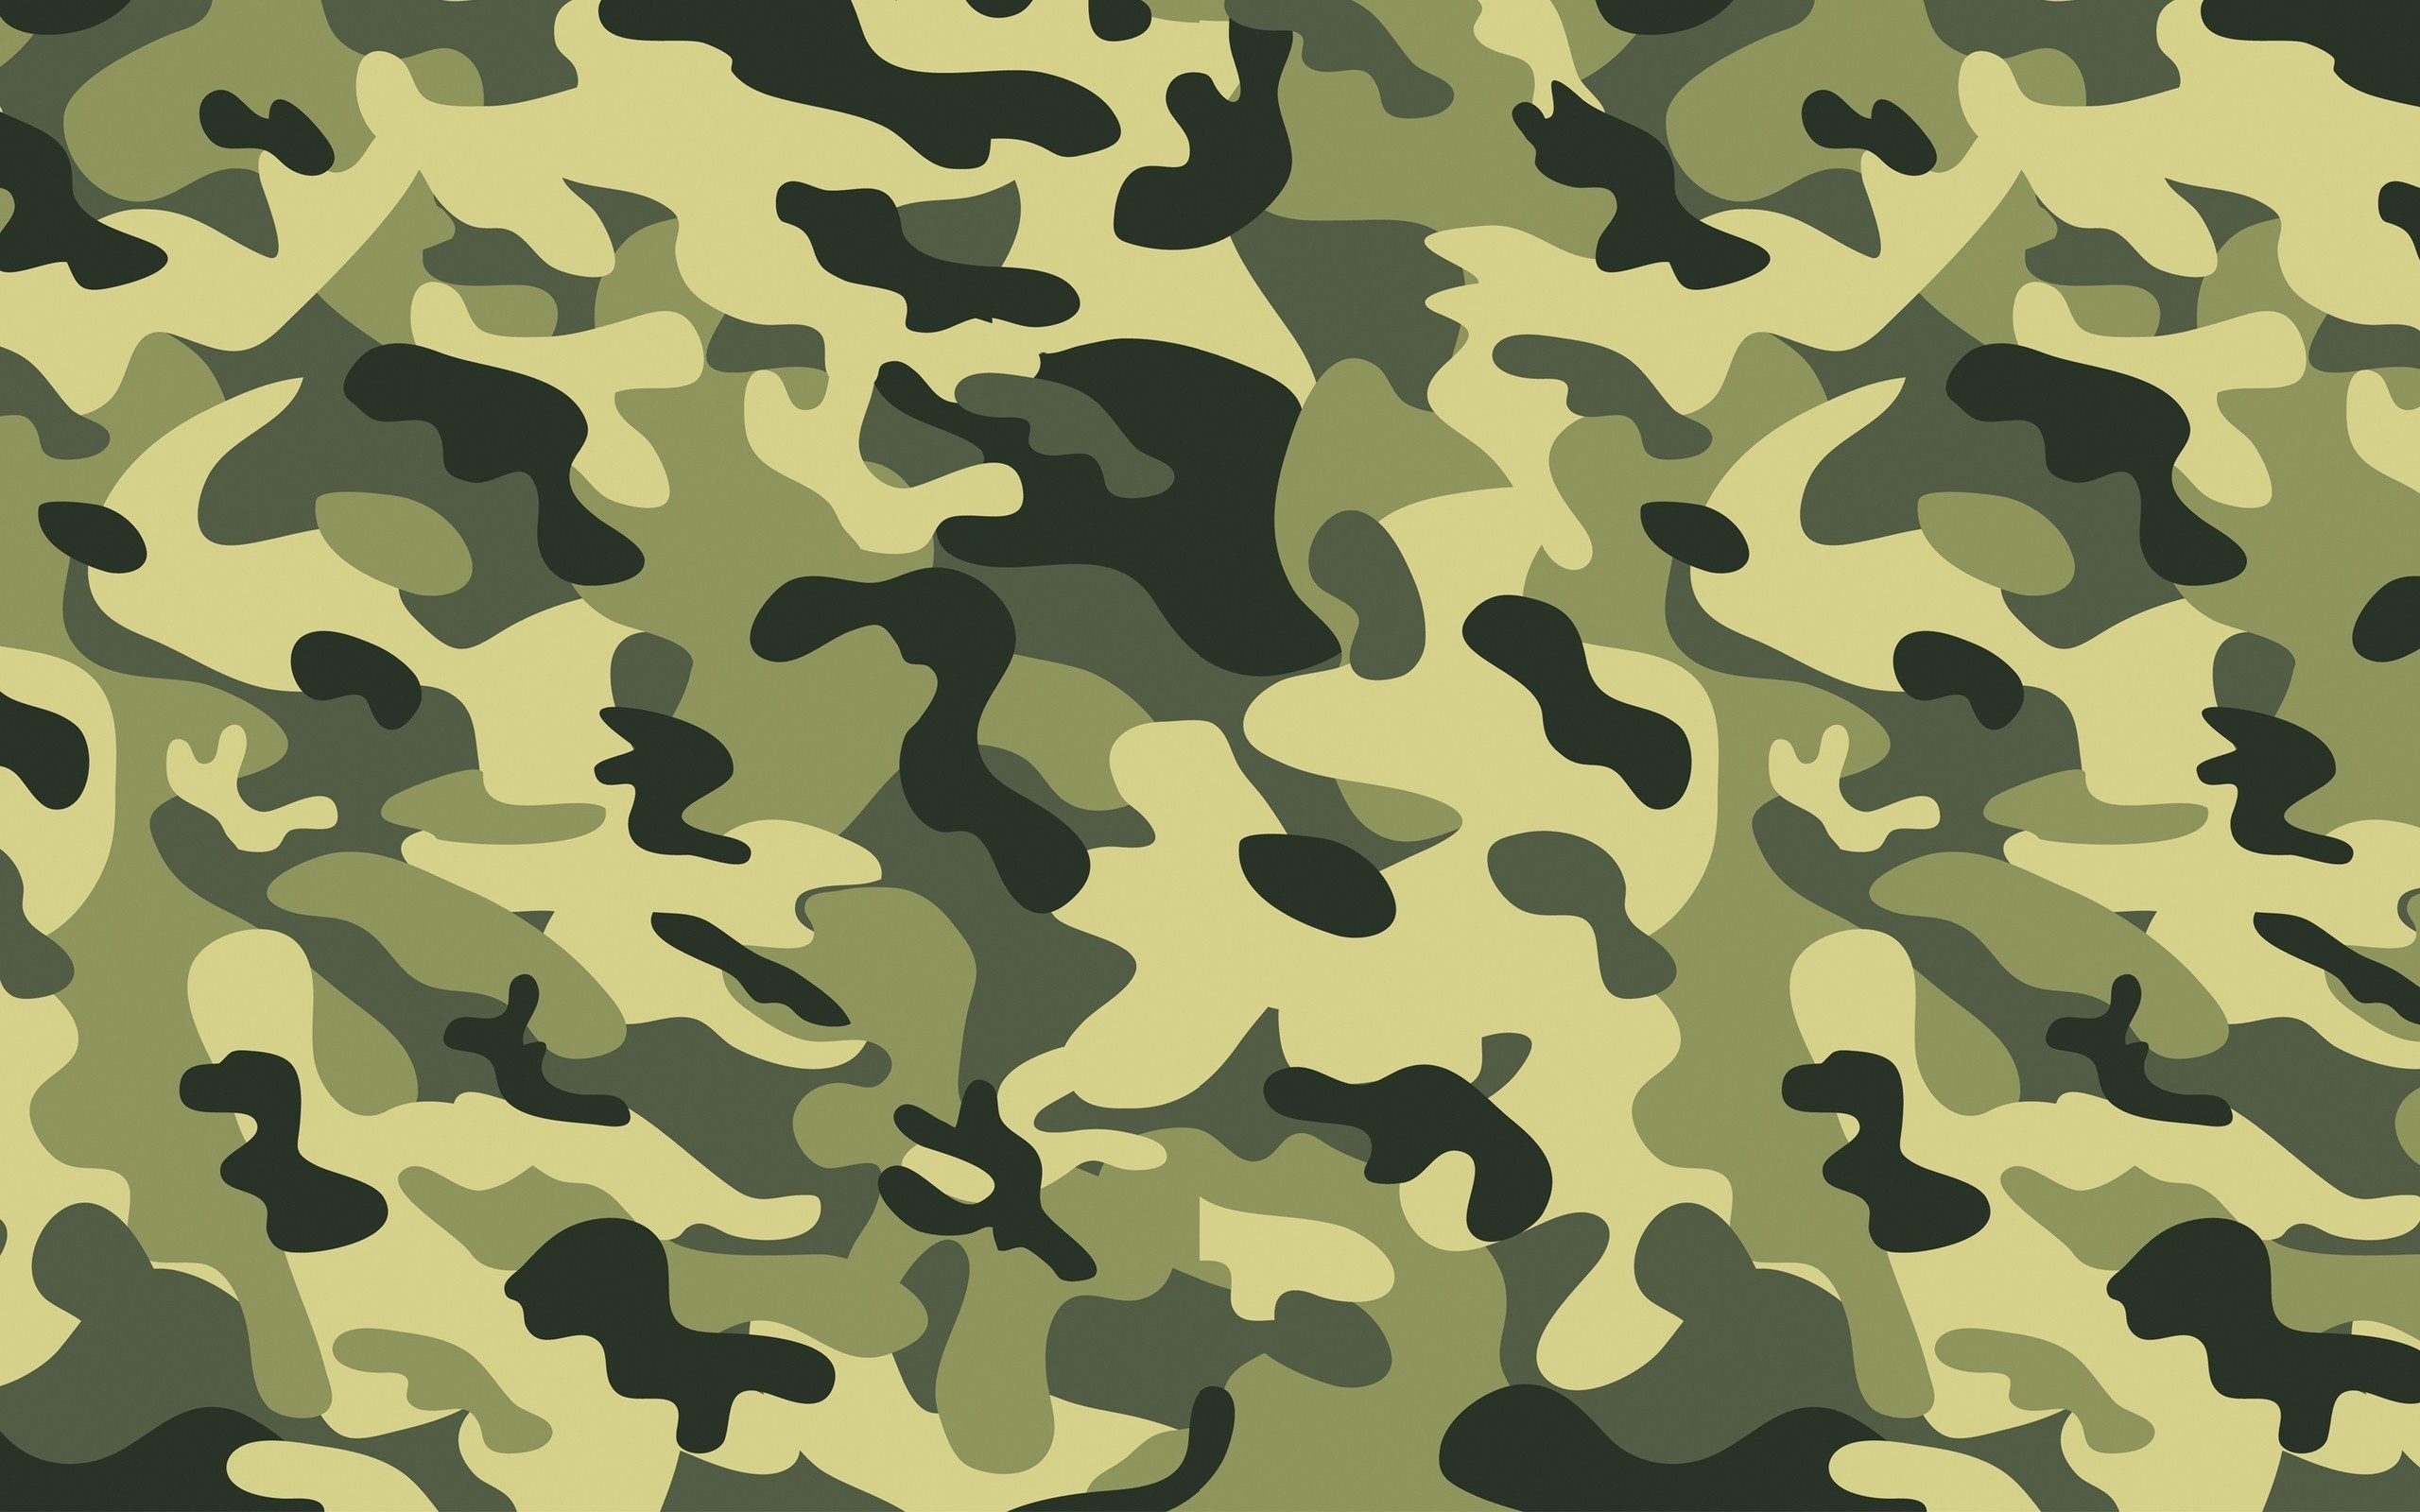 Military Wallpaper Hd For Phone